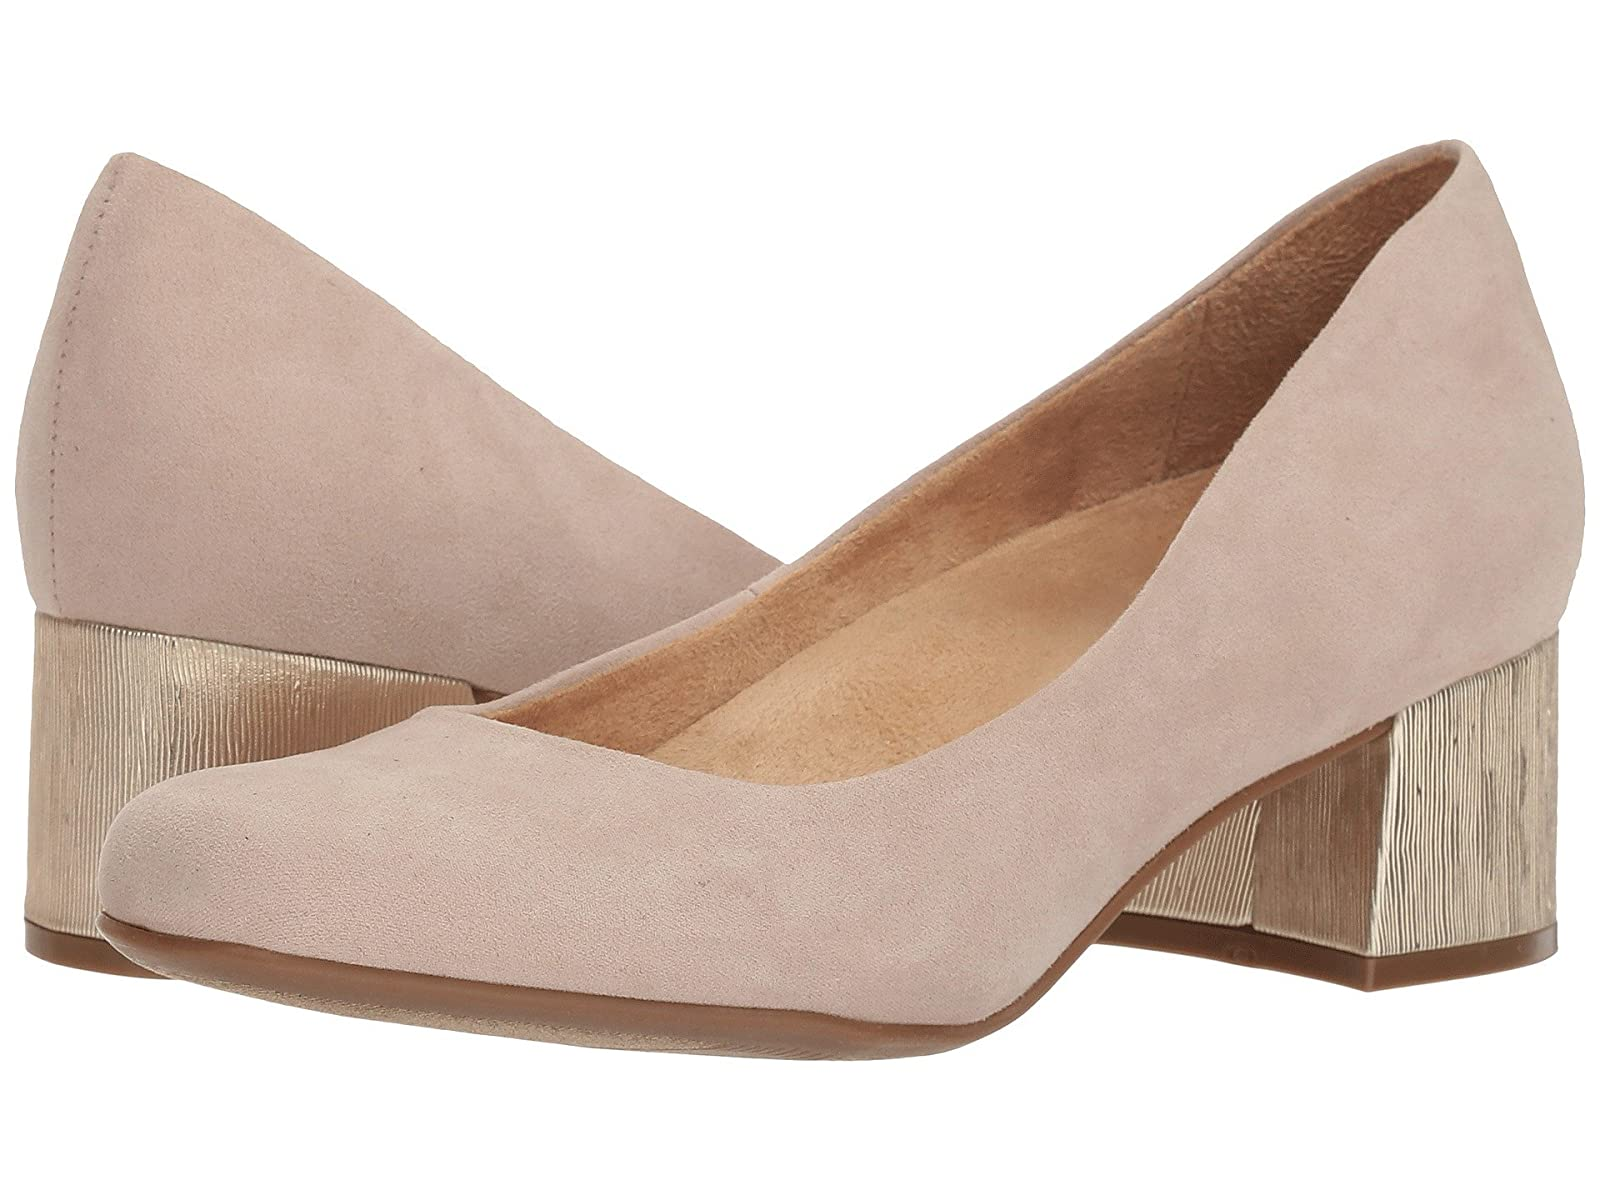 Naturalizer DonelleCheap and distinctive eye-catching shoes